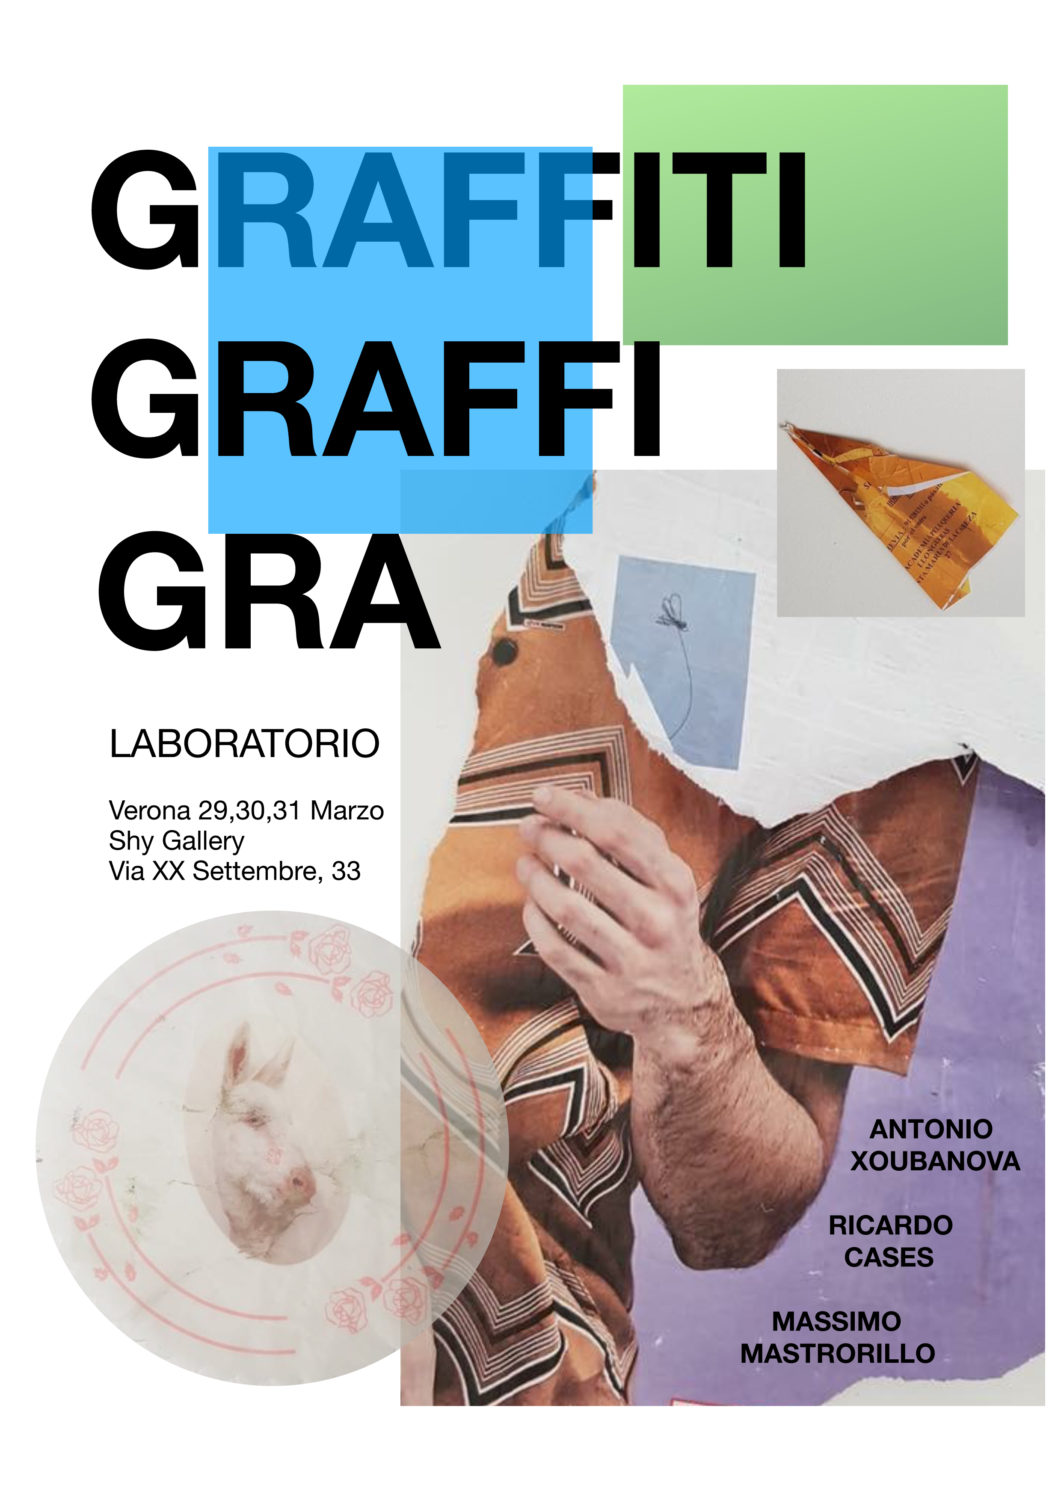 Graffiti Workshop/Verona